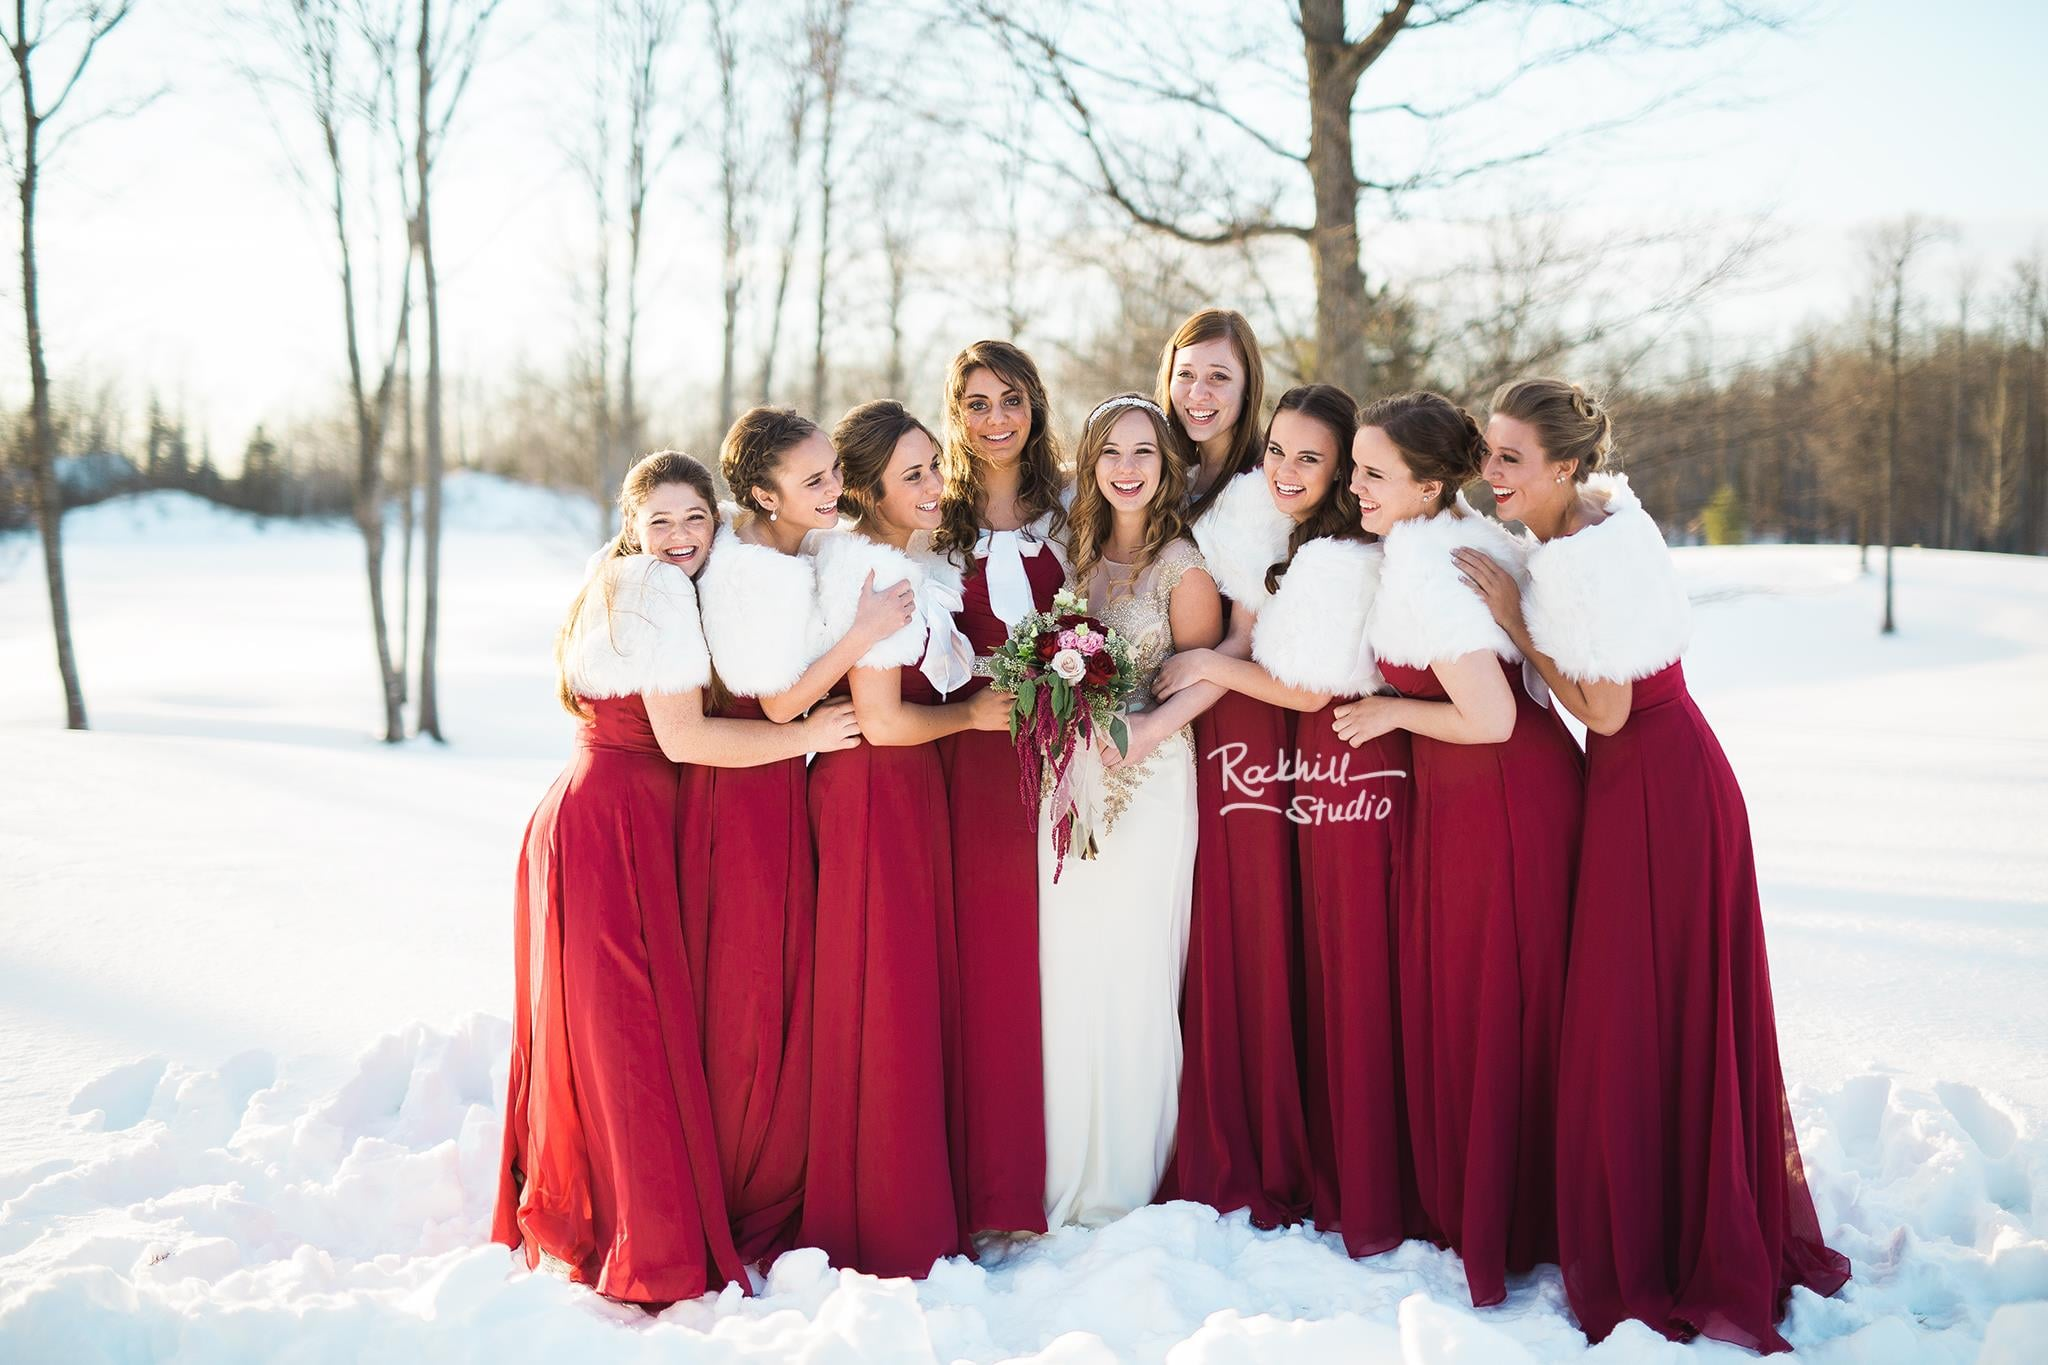 rockhill-studio-bridesmaids-bridalparty-michigan-upper-peninsula-newberry-1.jpg